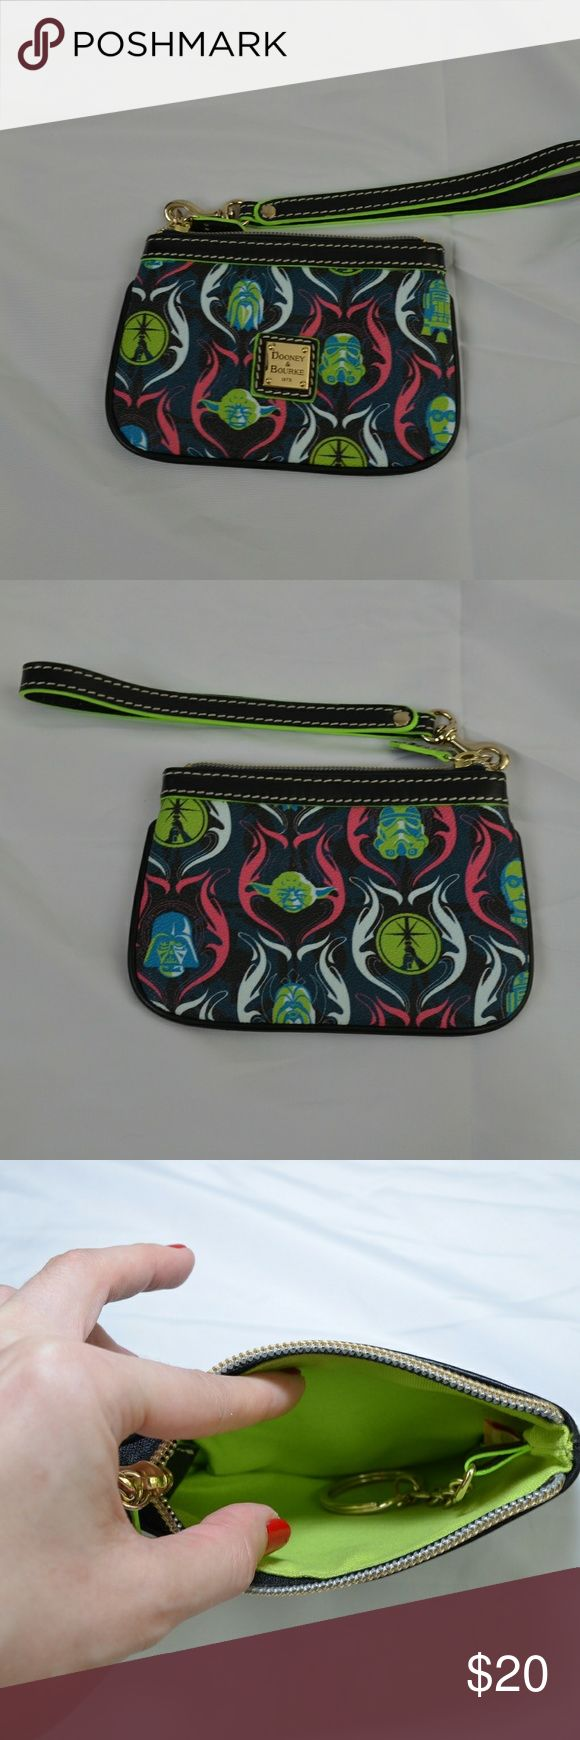 Dooney & Bourke Star Wars small wristlet From 2015's star wars weekends, this is a perfect little change purse for the Star Wars enthusiast!!  NWOT. Dooney & Bourke Bags Wallets